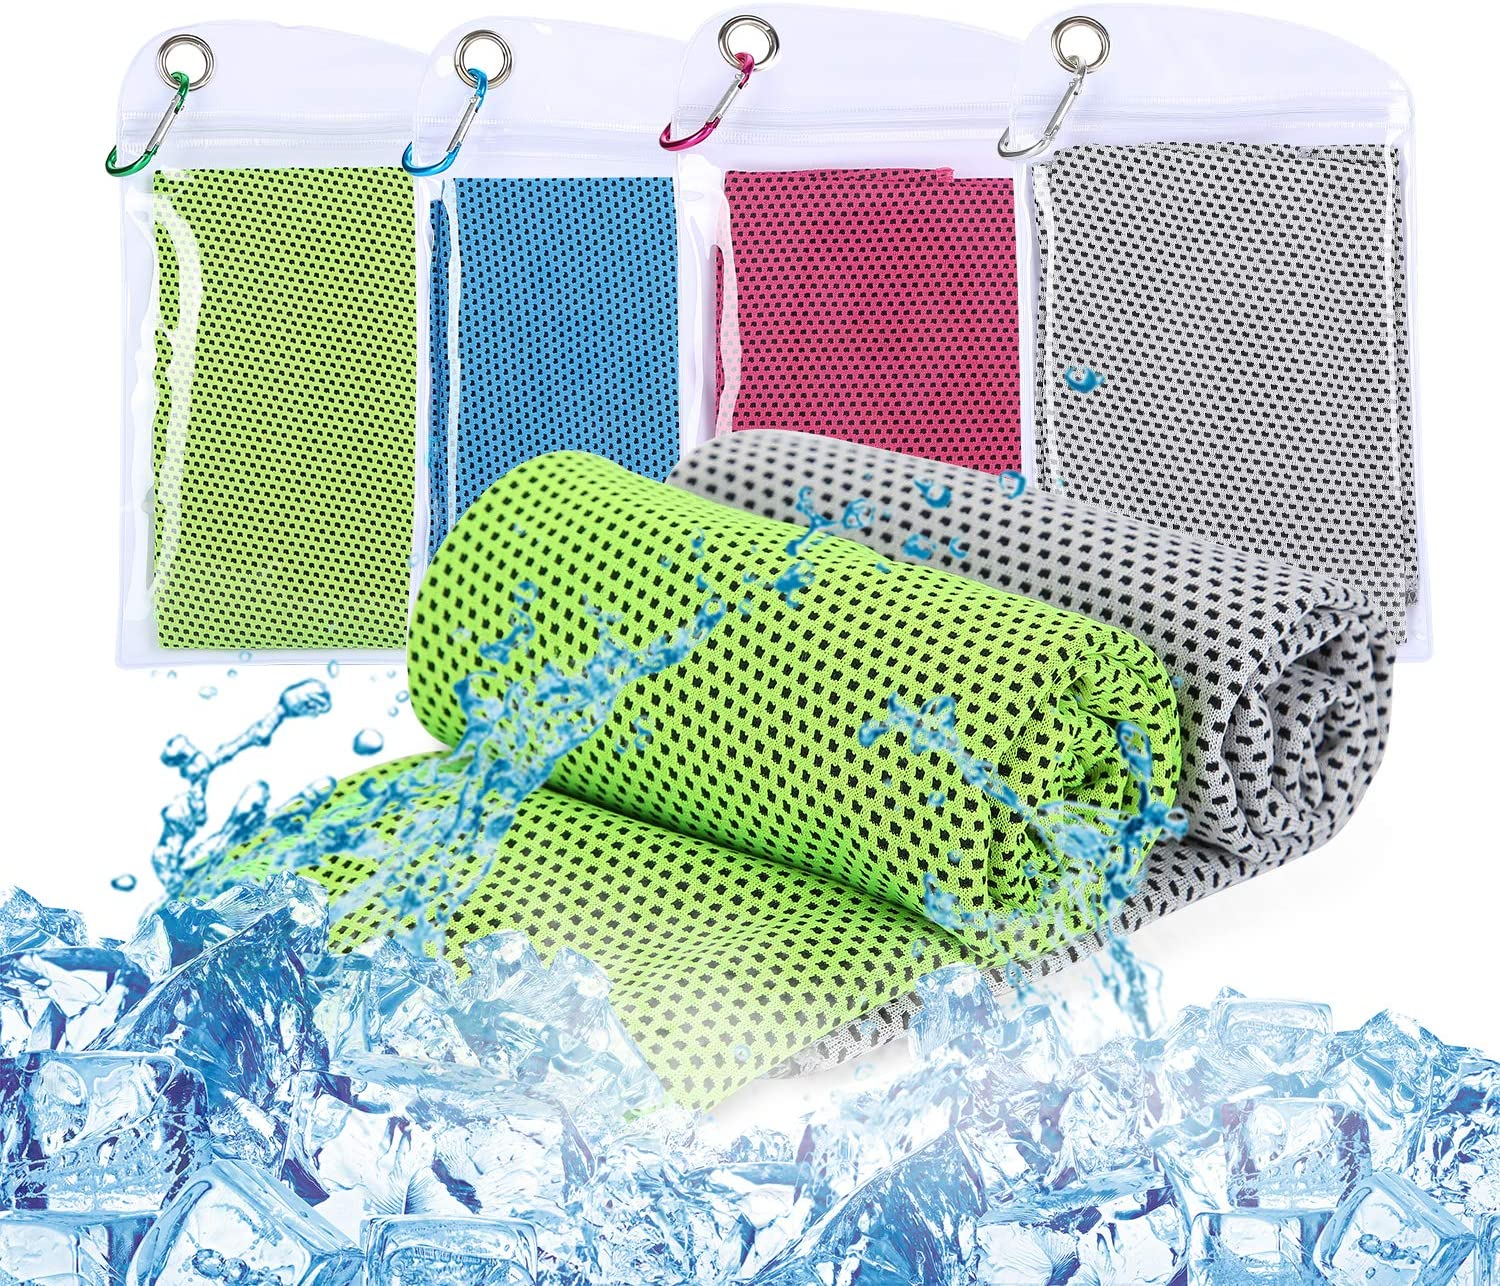 100 x 30 cm Gym Sports Cool Cold Towel Quick Dry Microfiber Cooling Towel or Sports Workout Fitness Gym Yoga Pilates Travel Camping Ulikey 4 Pack Cooling Towel